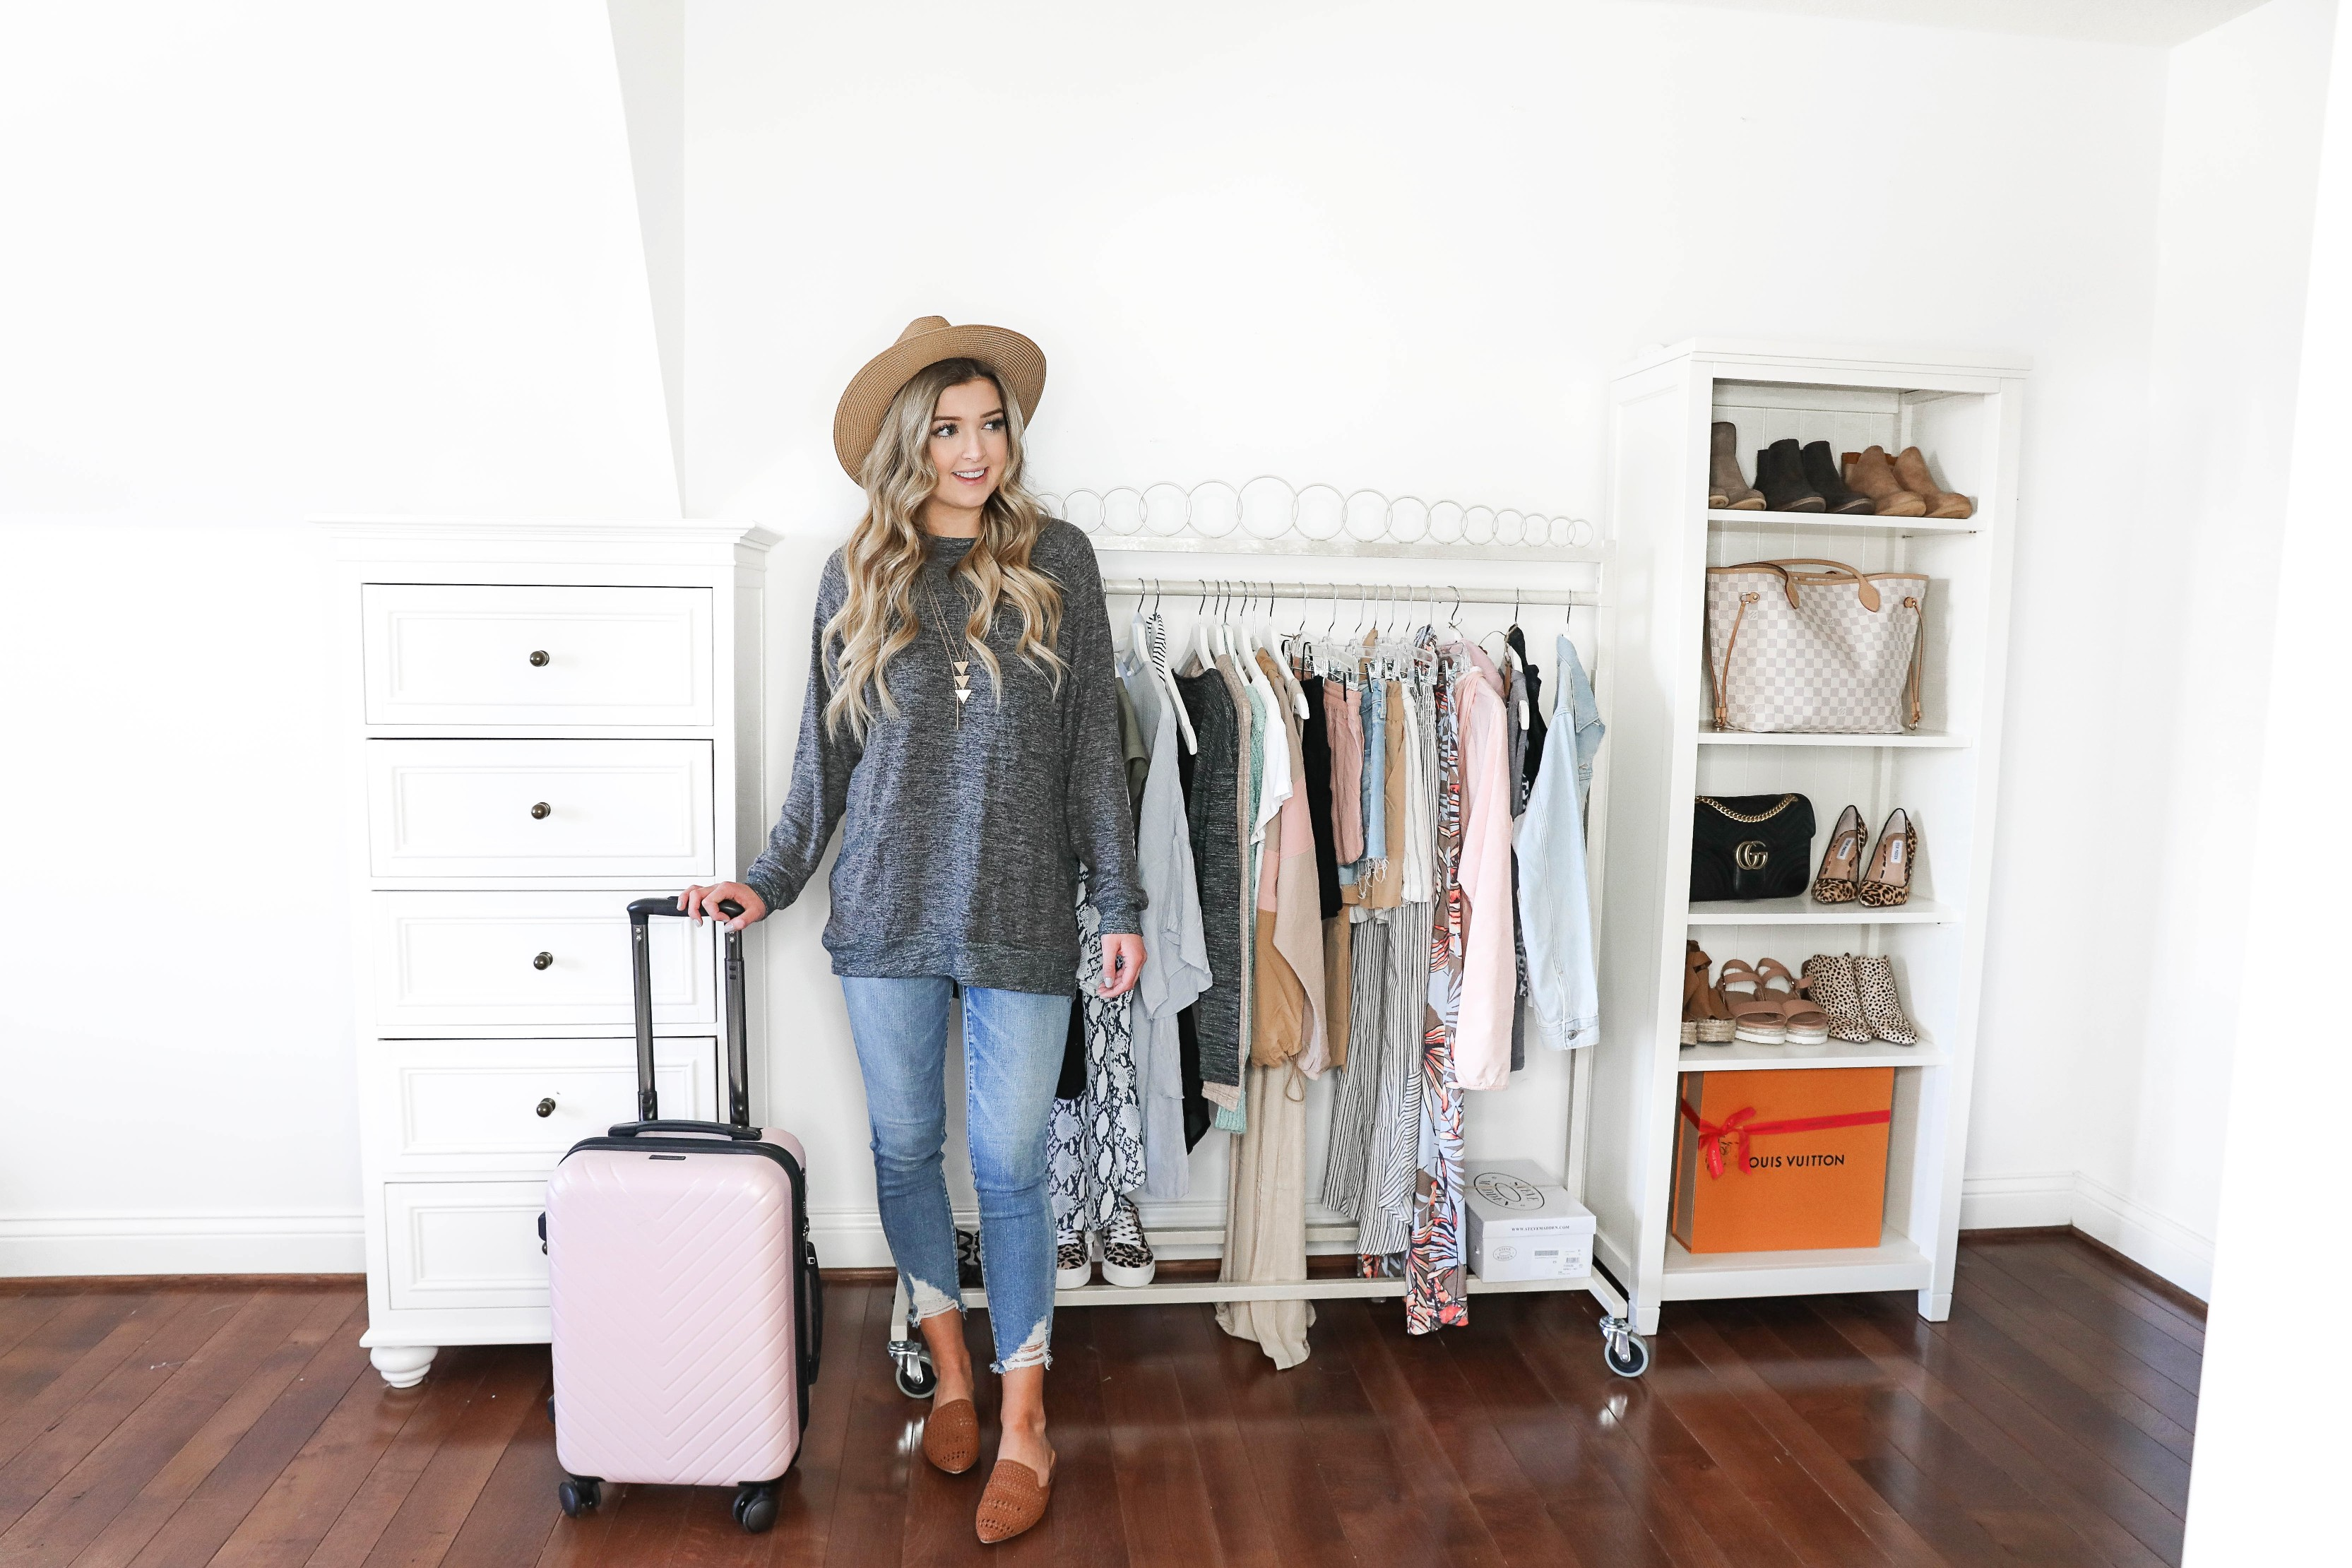 How I plan my outfits for trips and blog photos! Total closet and wardrobe goals! I love my new garment rack right next to my shoe rack and fashion shelves! All the travel packing planning tips you need! Details on fashion blog daily dose of charm by lauren lindmark